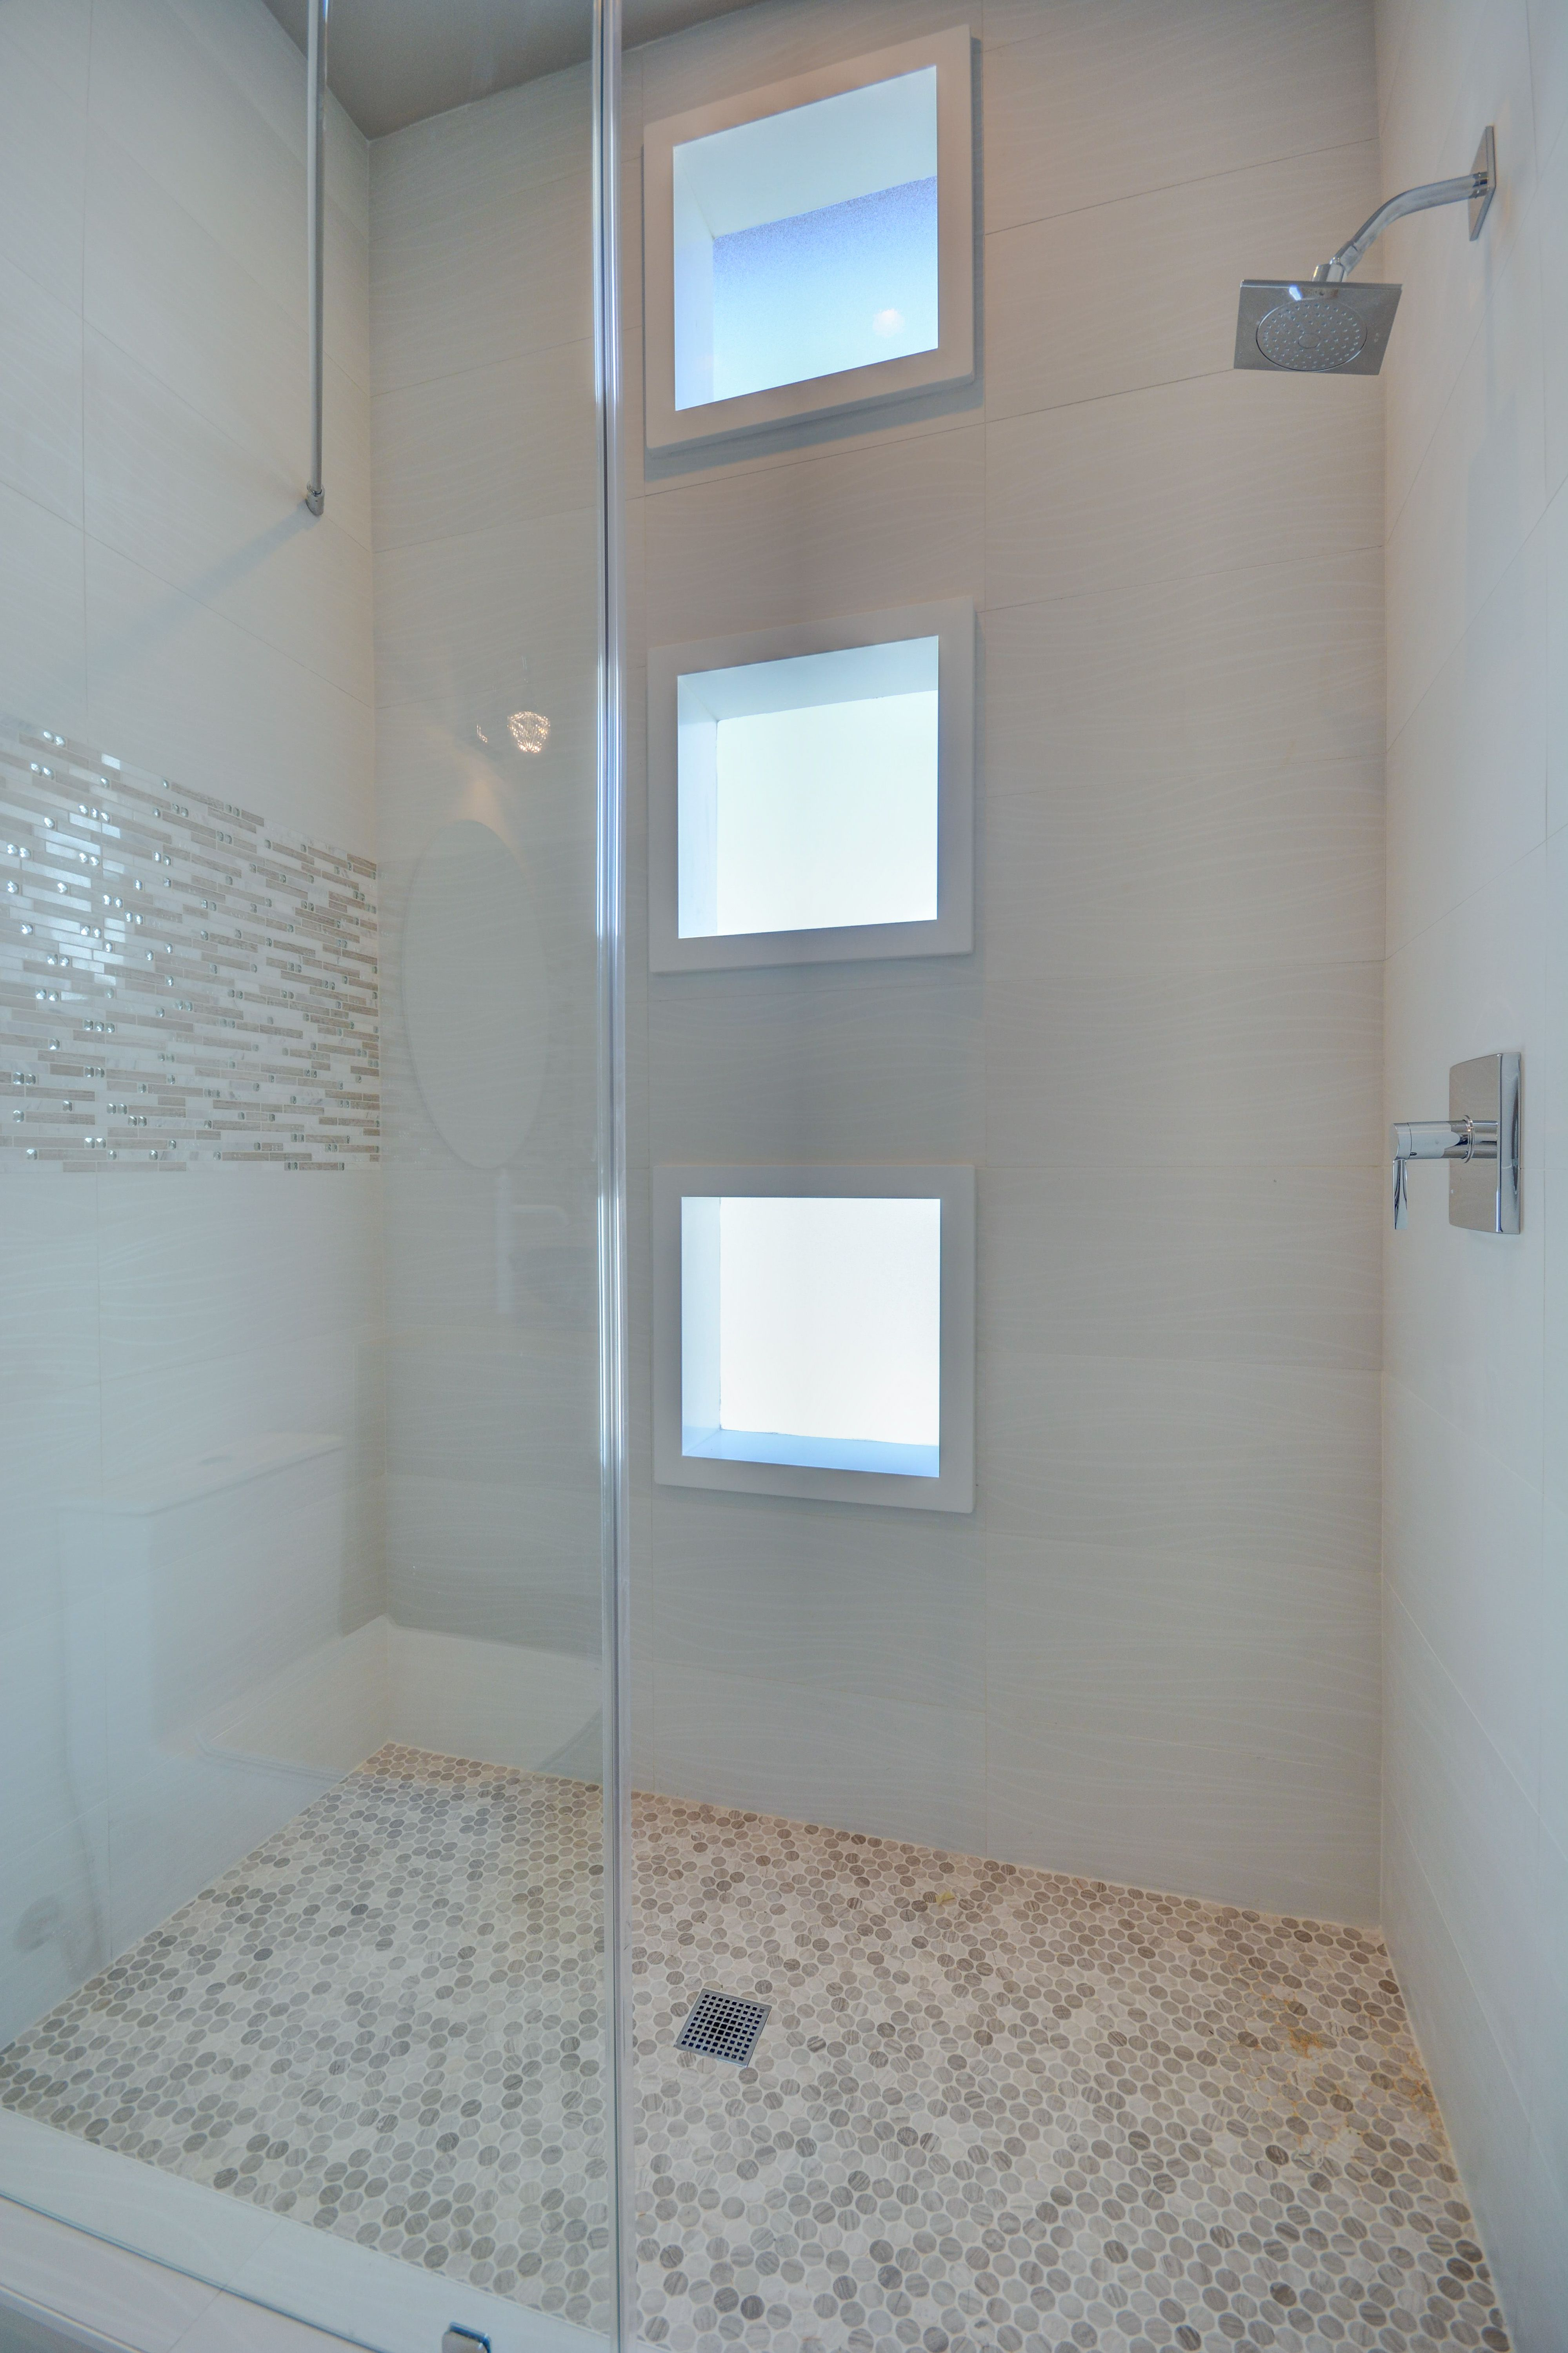 Bathroom Shower Design With White Penny Round Shower Pan Off White Wave Shower Walls And Glam Sto Bathroom Shower Cottage Bathroom Design Ideas Shower Design